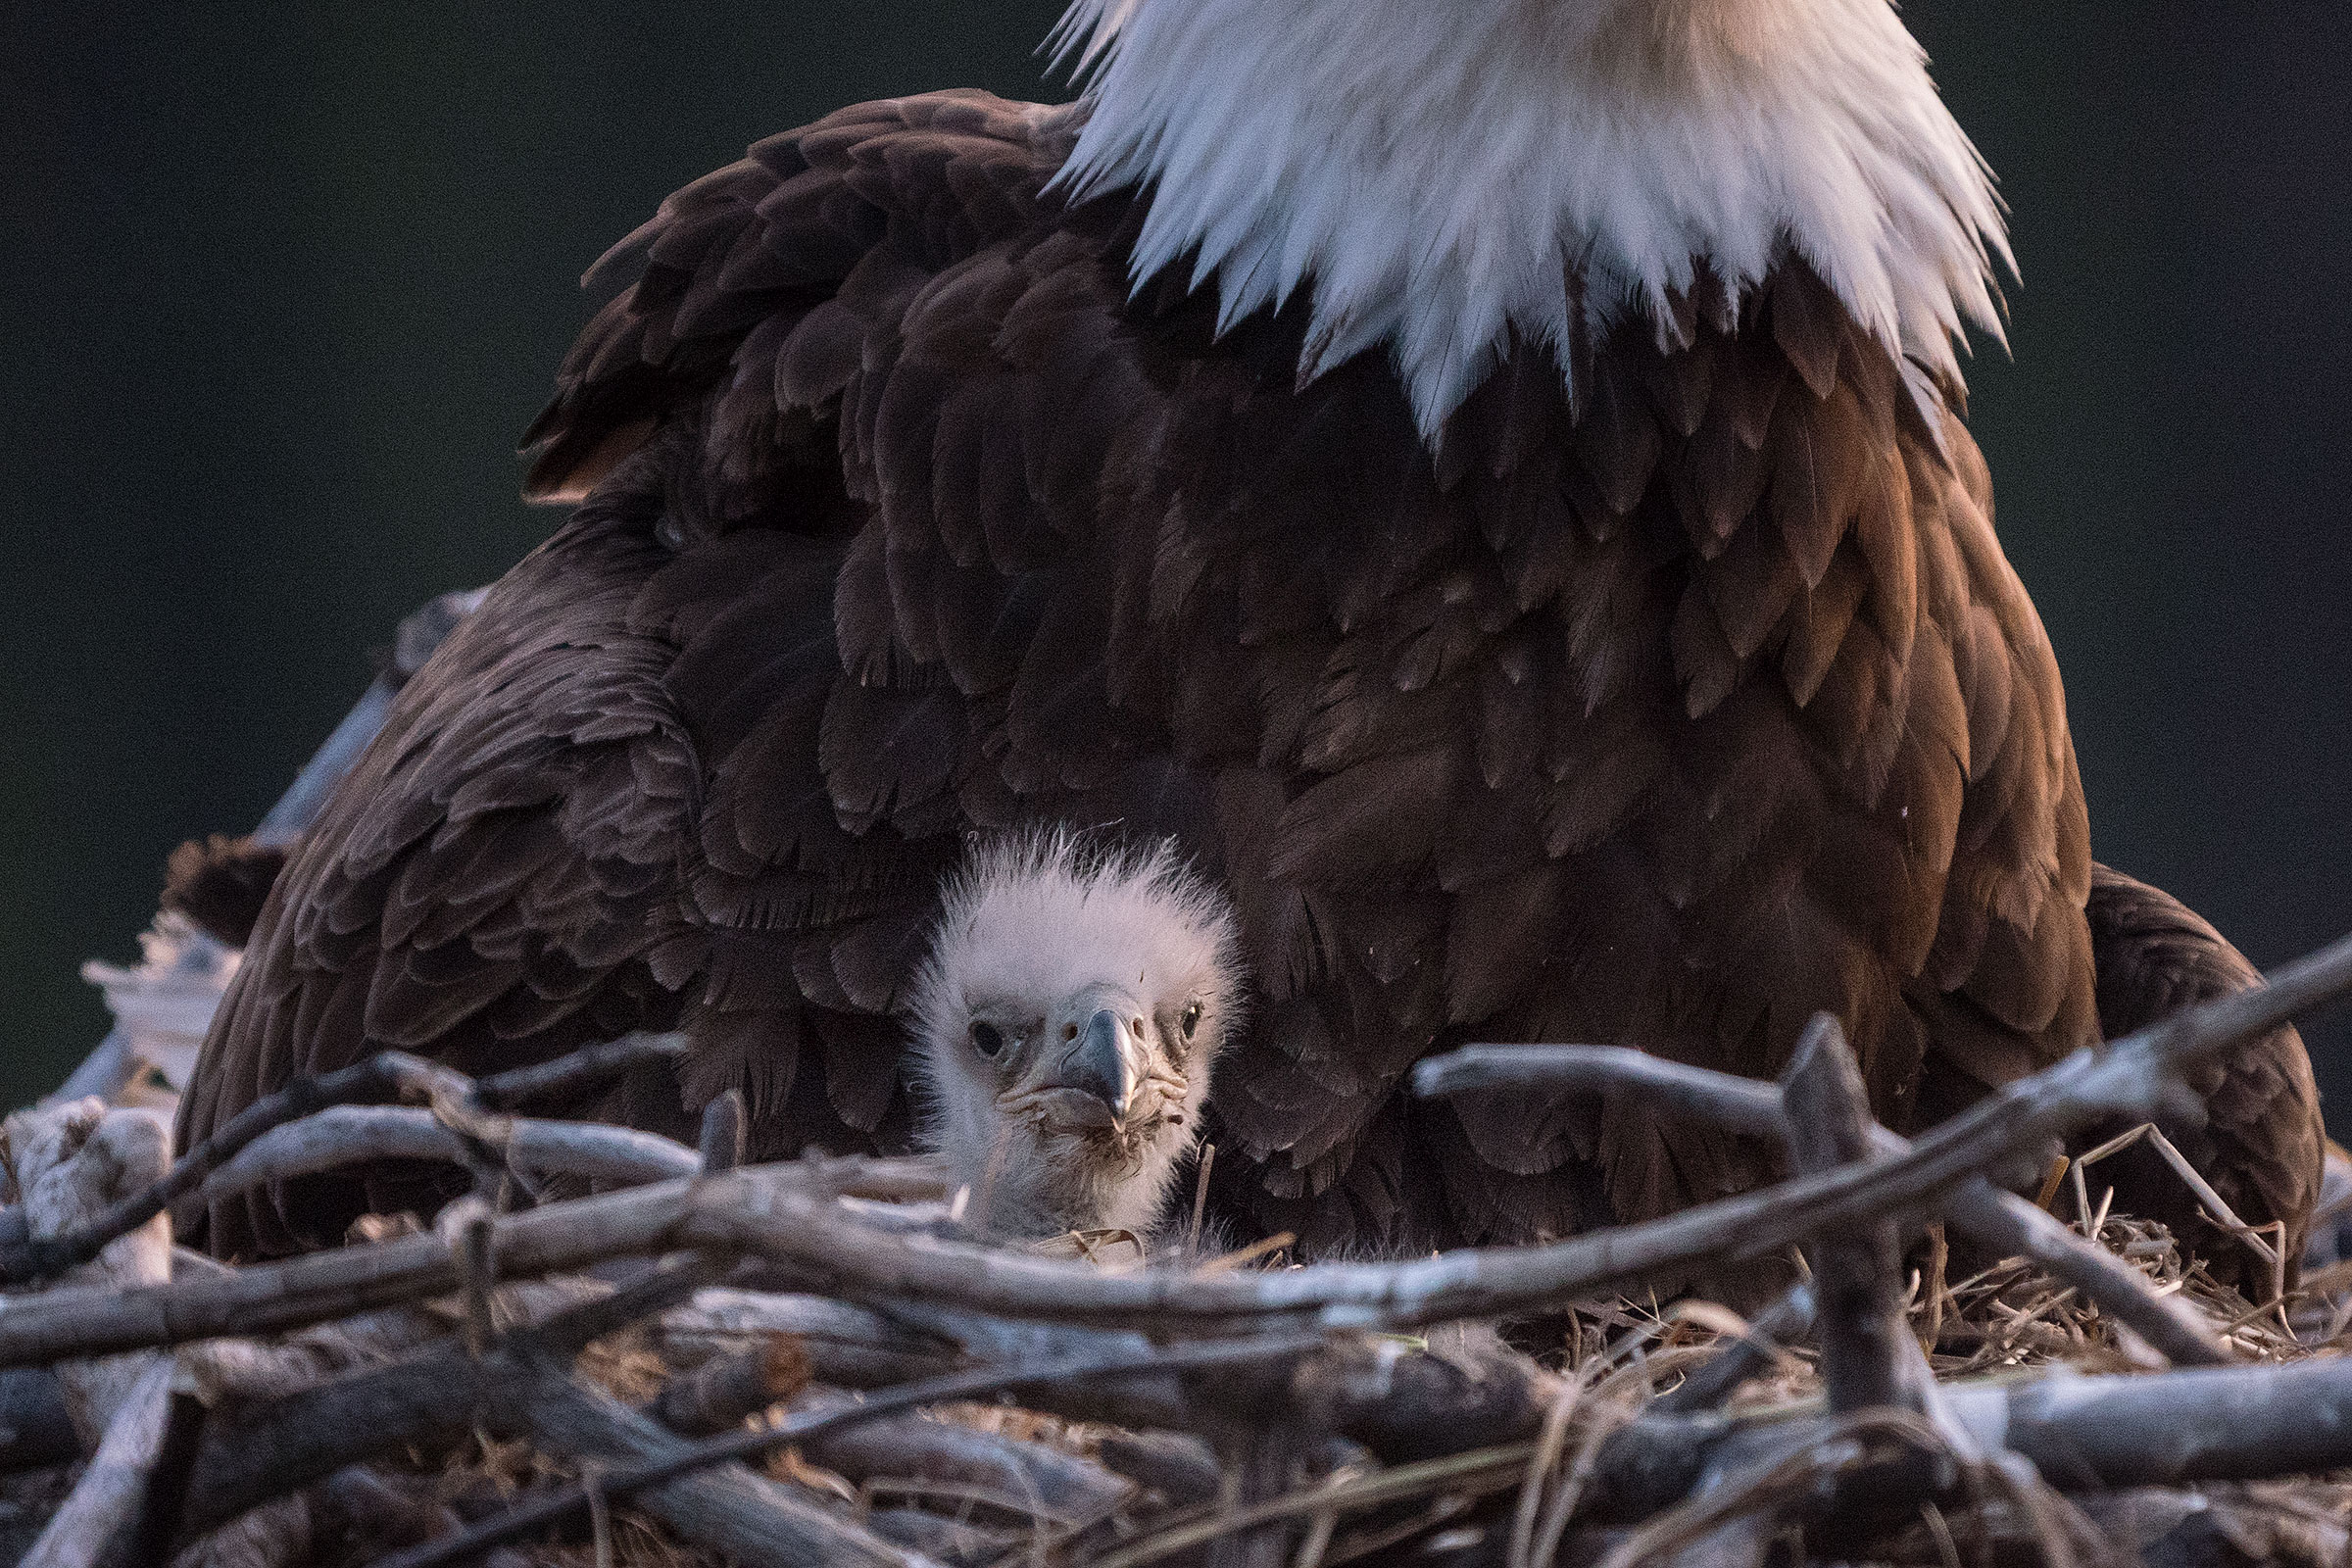 After more than a decade striving to photograph a Bald Eagle nest with eaglets, photographer Peter Mather finally captured this and the above image. Read the story of how here. Peter Mather